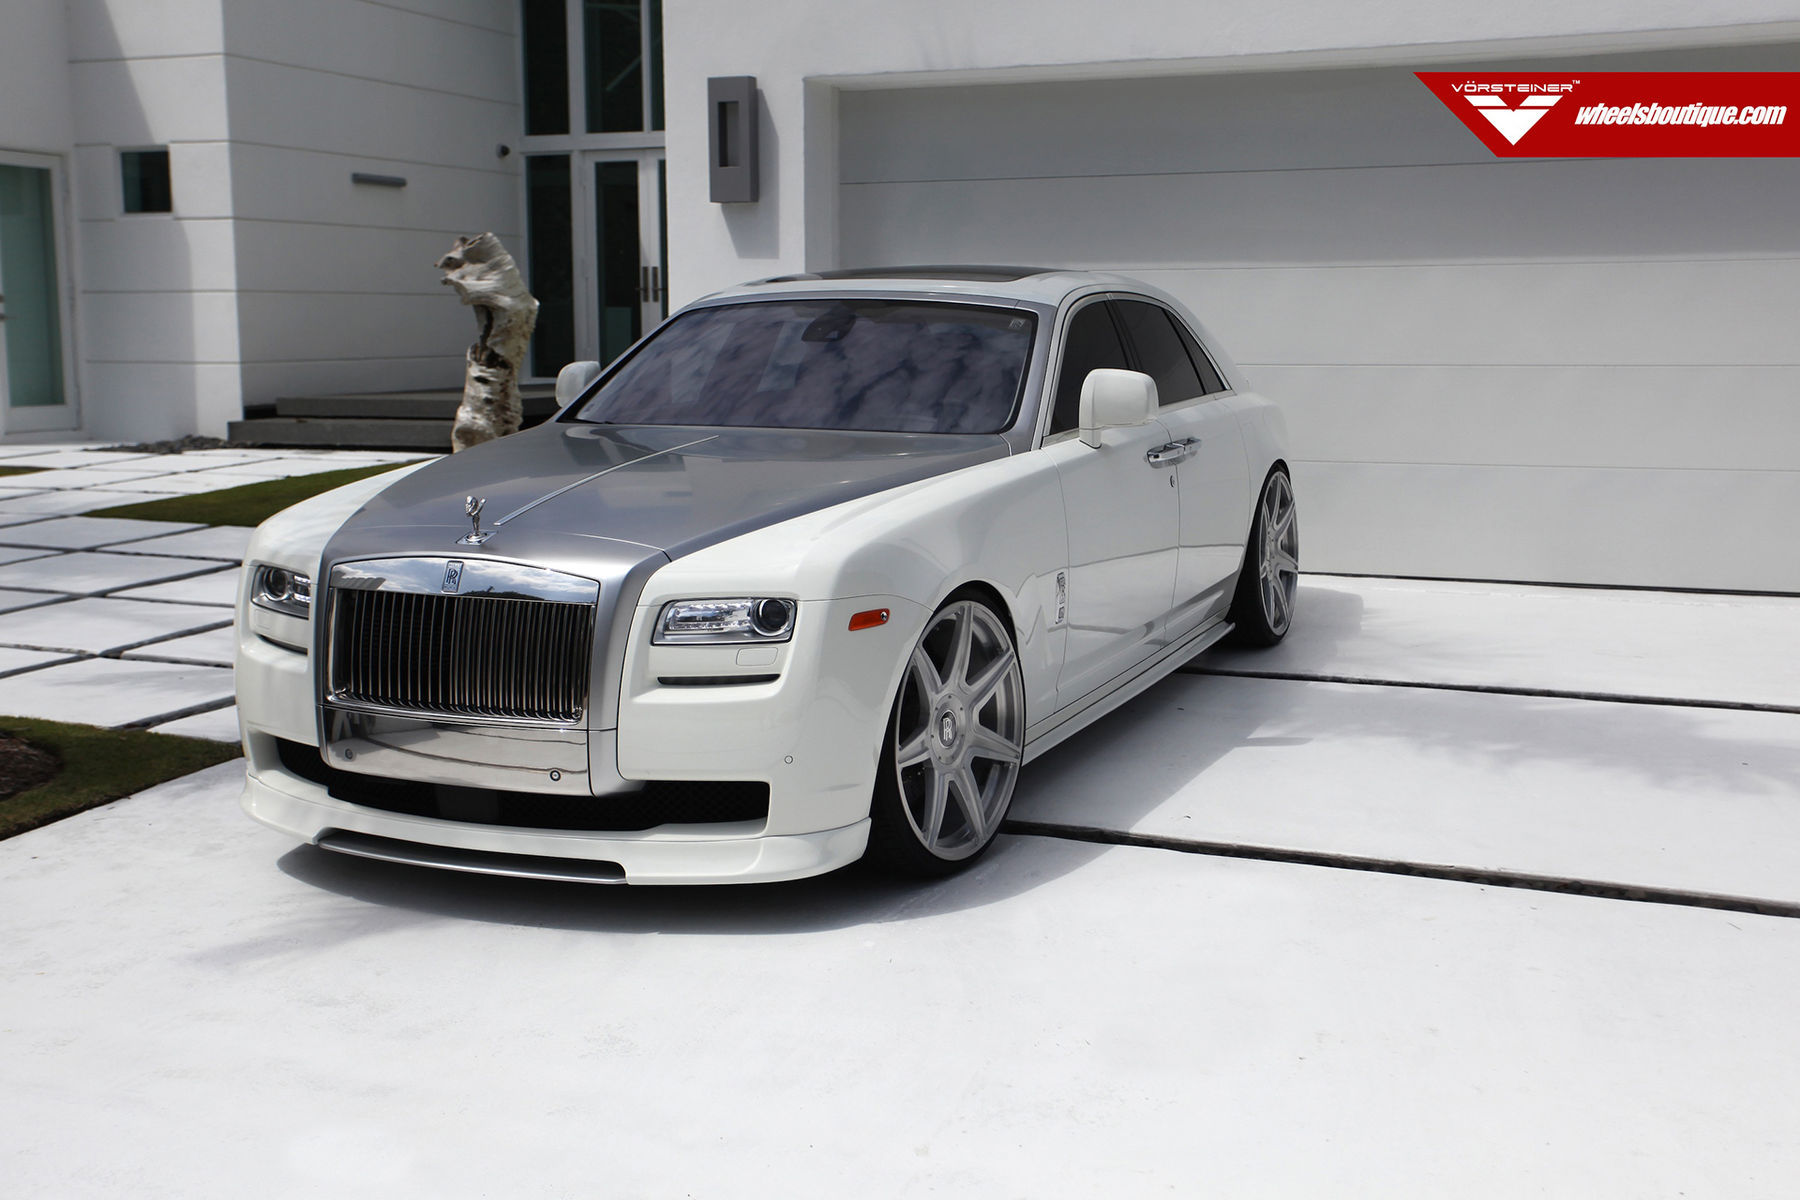 2013 Rolls-Royce Ghost | Rolls Royce Ghost RR04